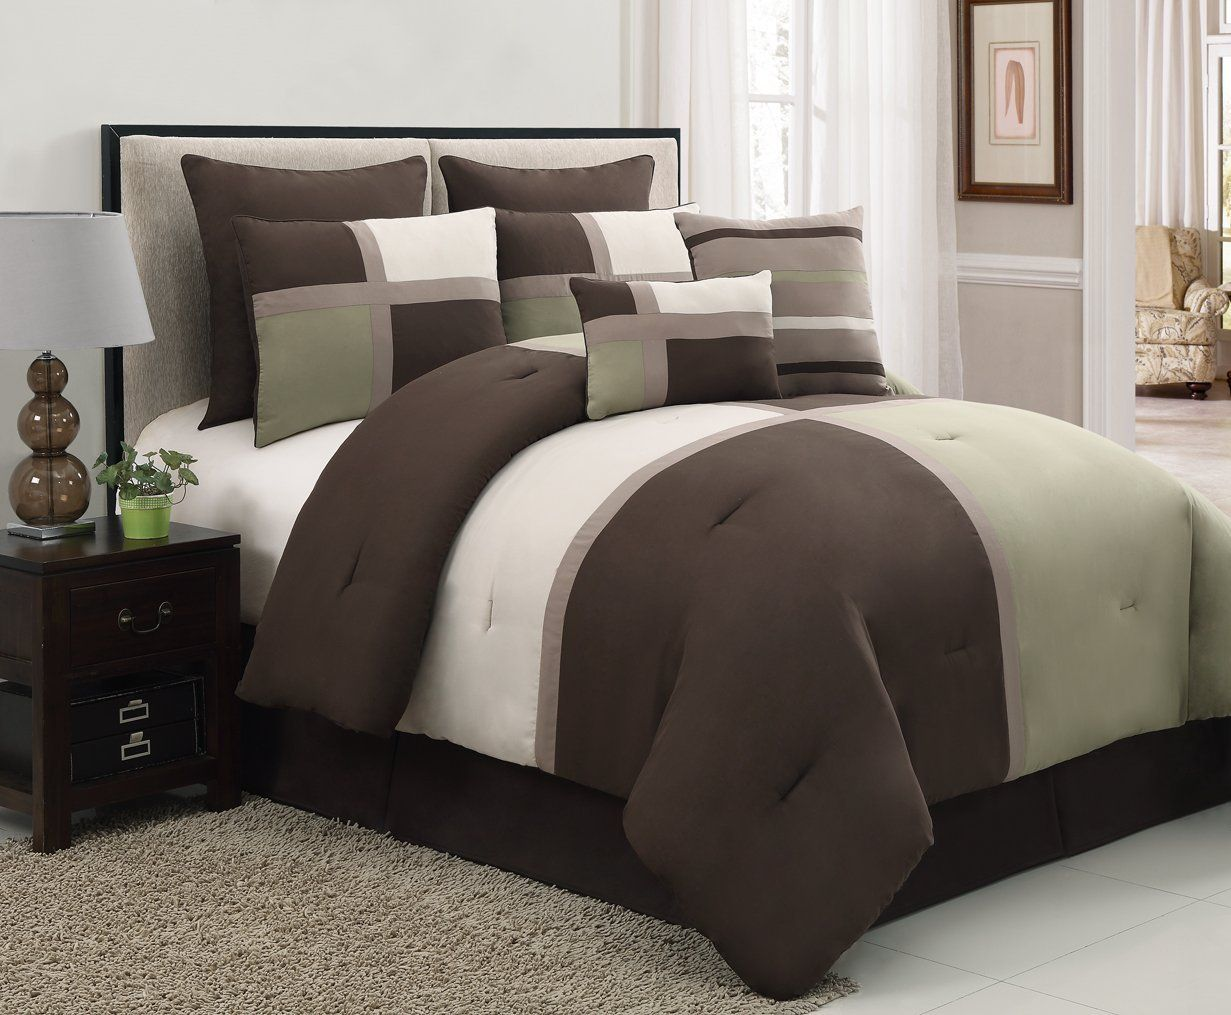 contemporary bedding sets for men | < living spaces | pinterest